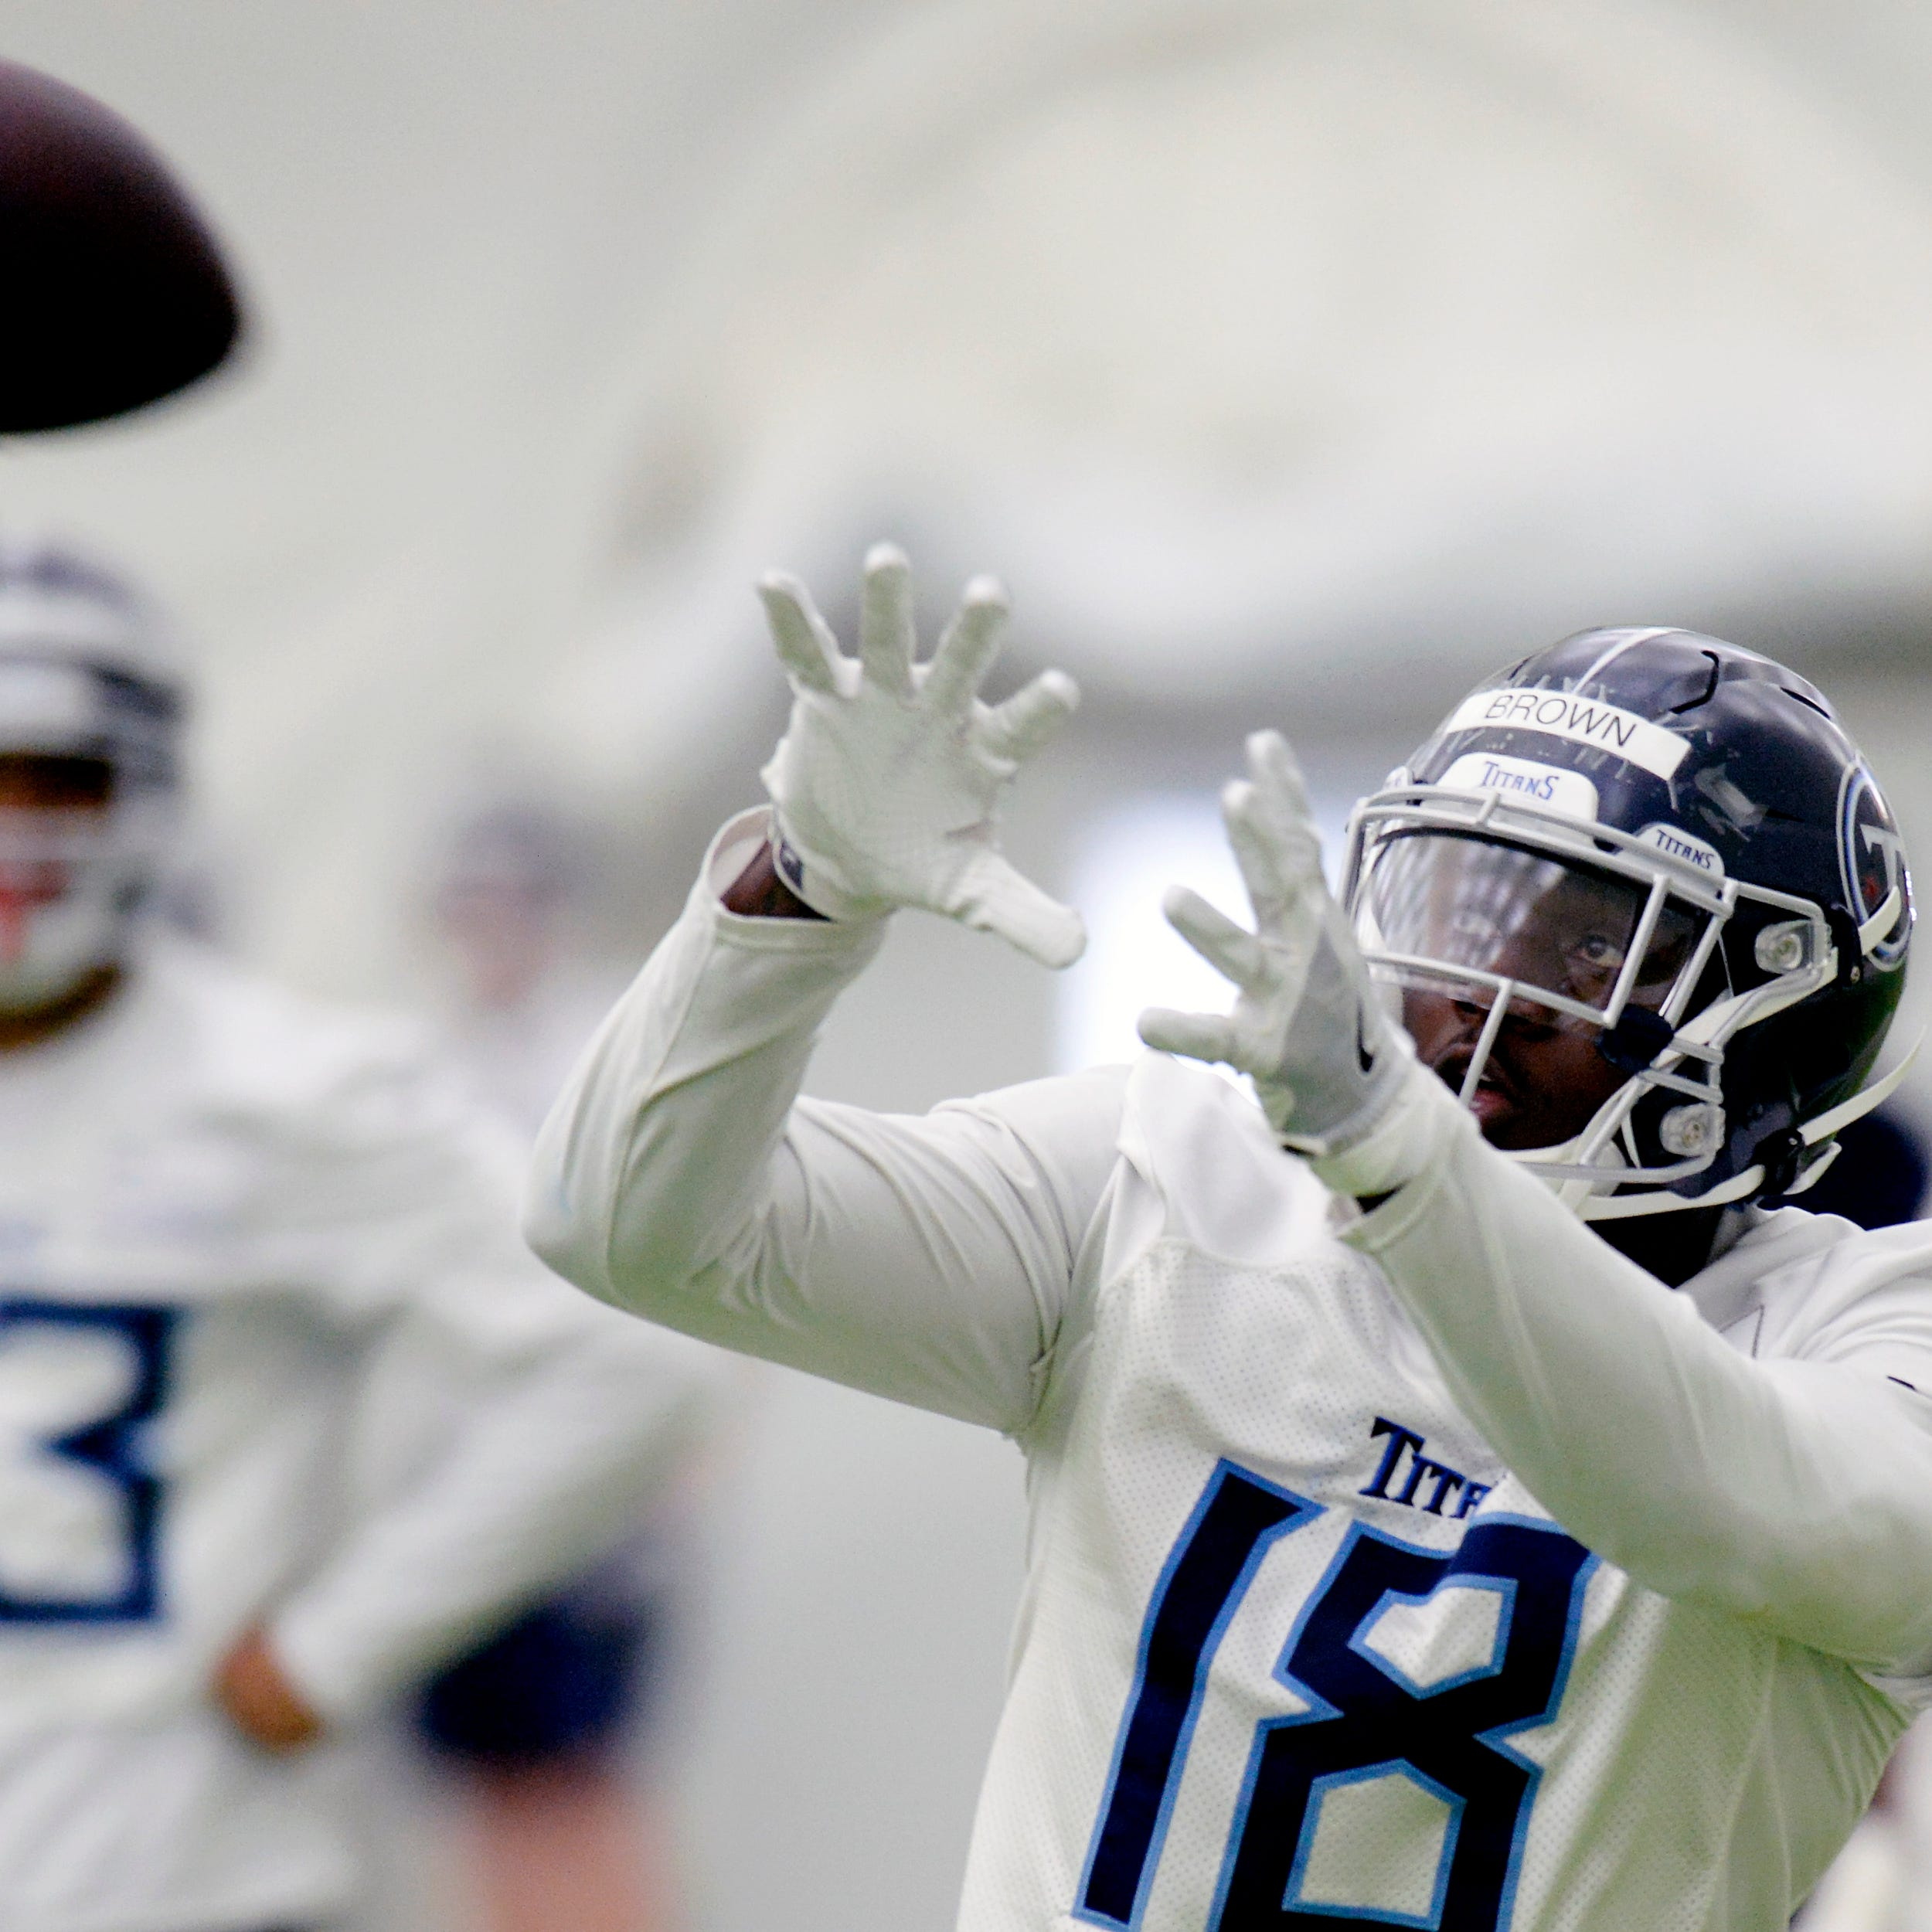 Titans rookie mini-camp: No Jeffery Simmons, receiver A.J. Brown looks like an LB